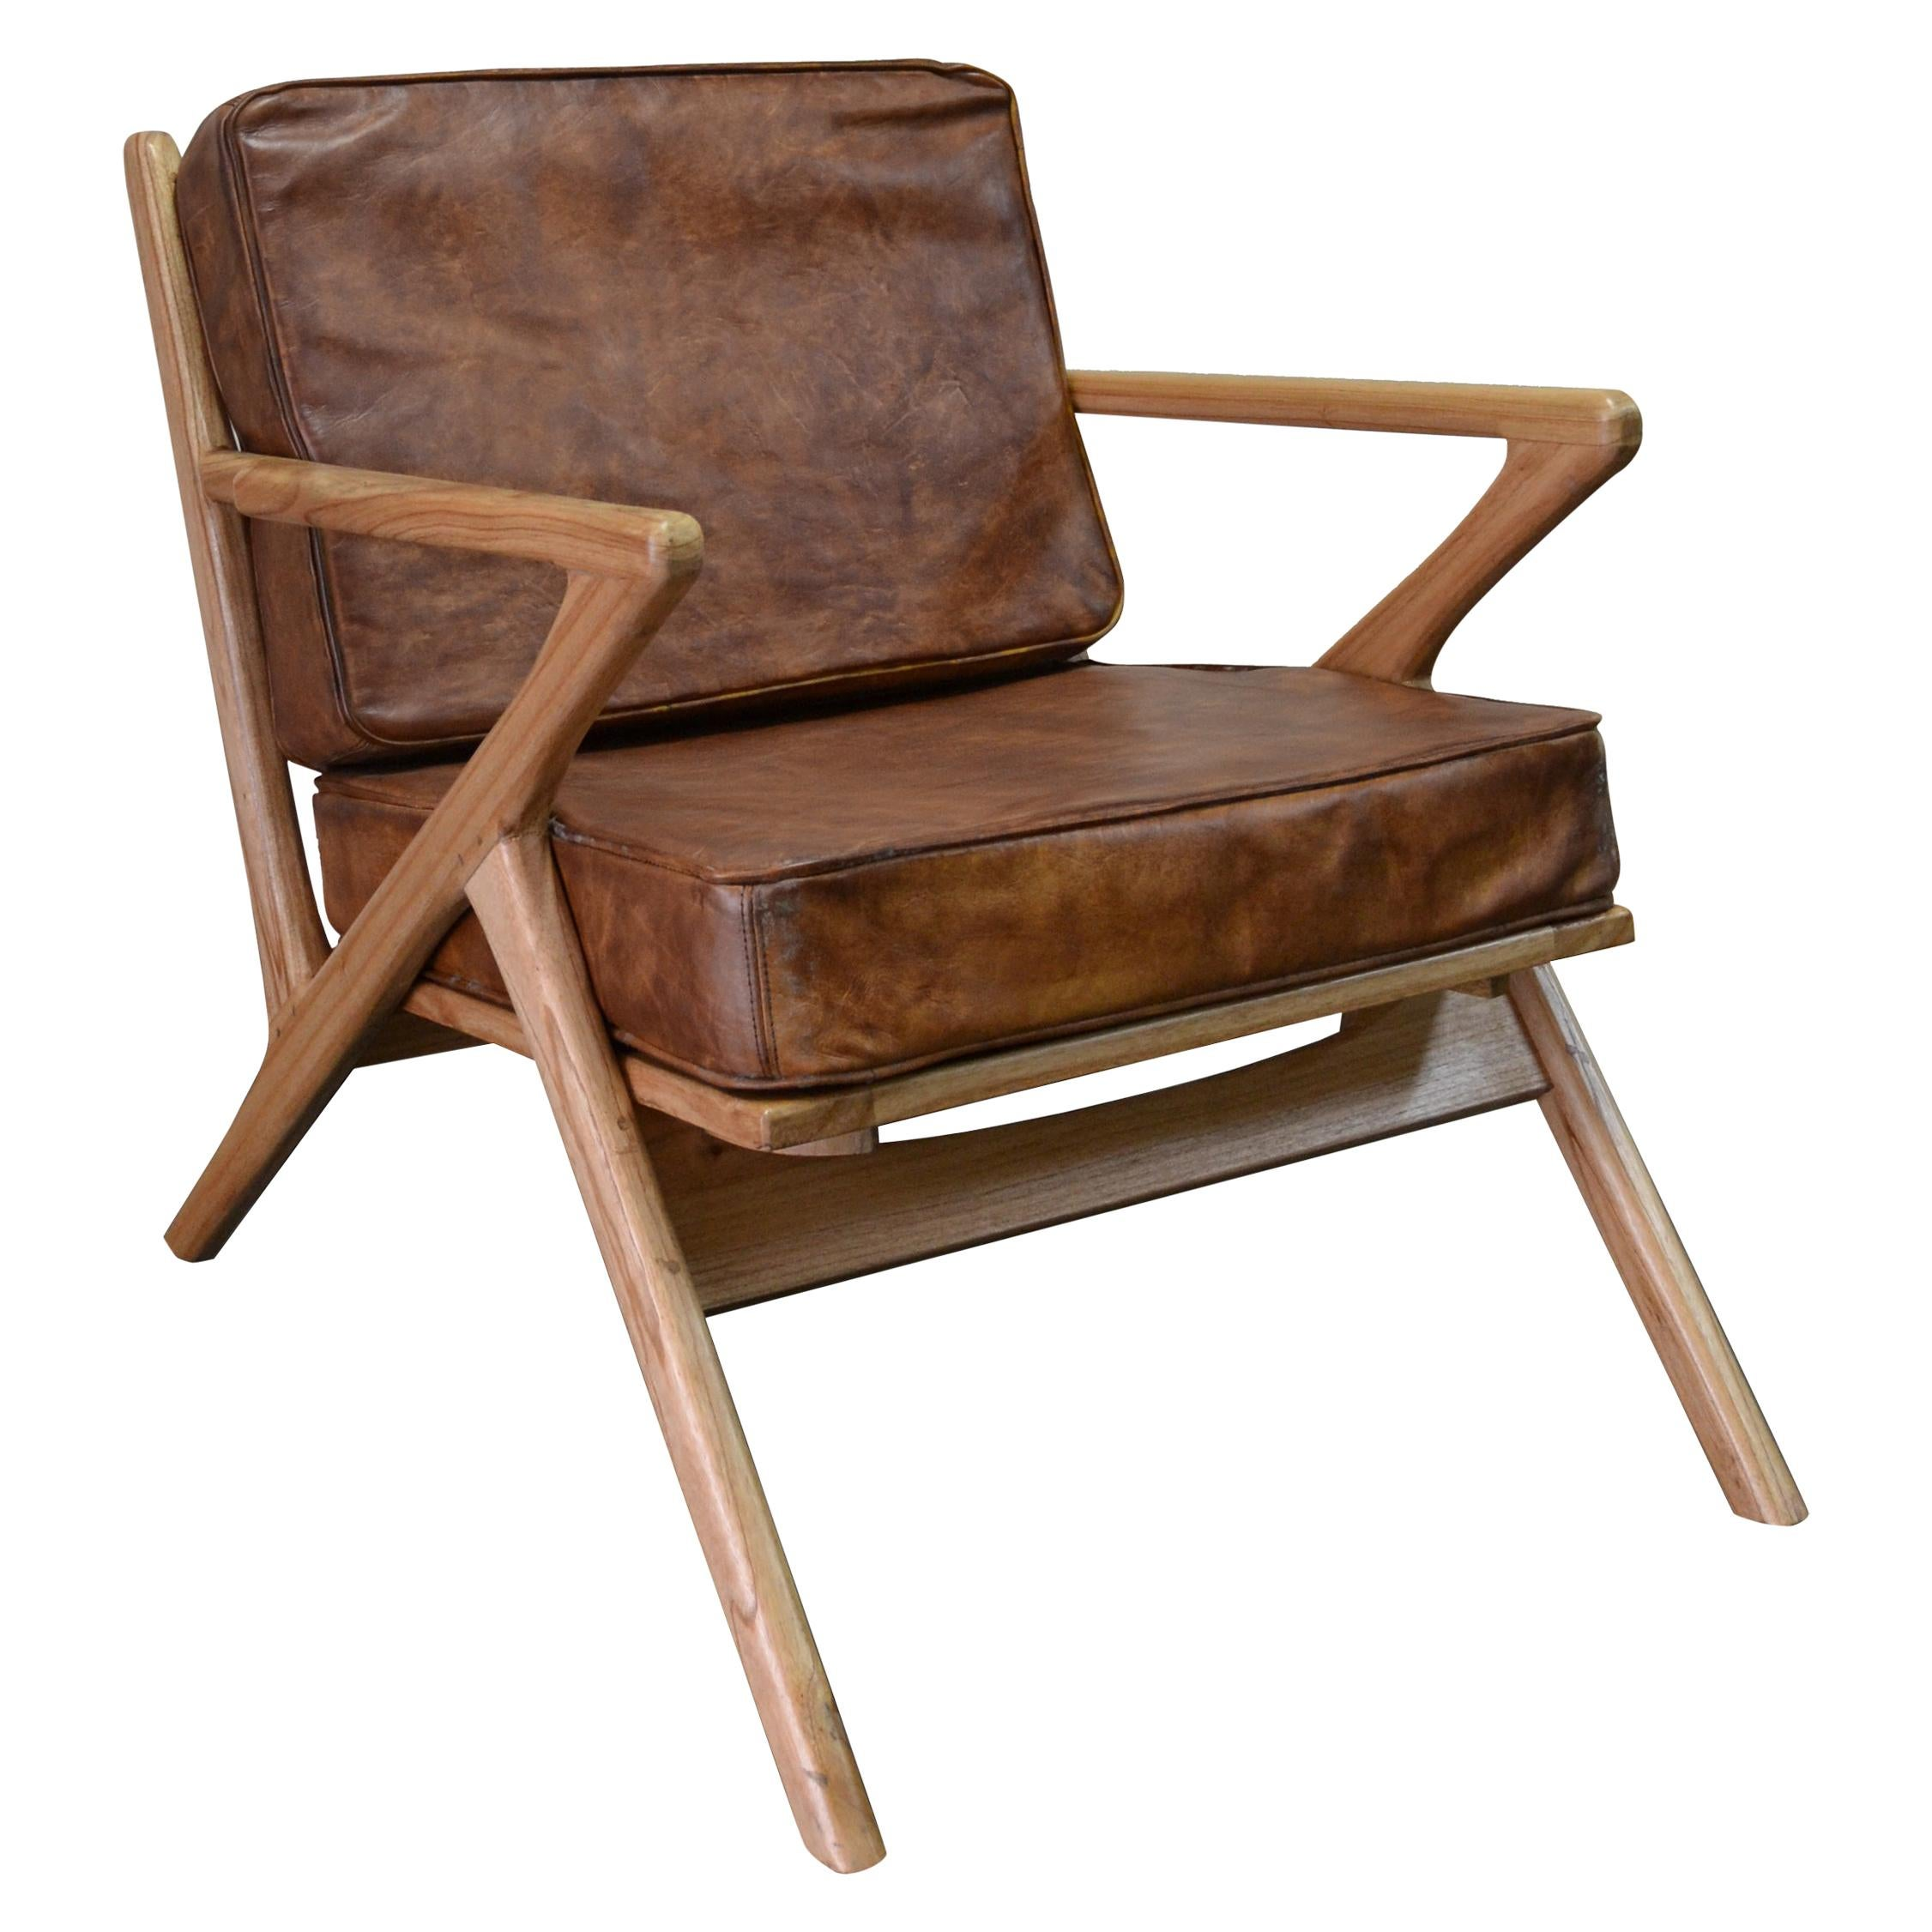 New Bentwood Armchair with Wood Seat and Back and Brown Skin Cushions